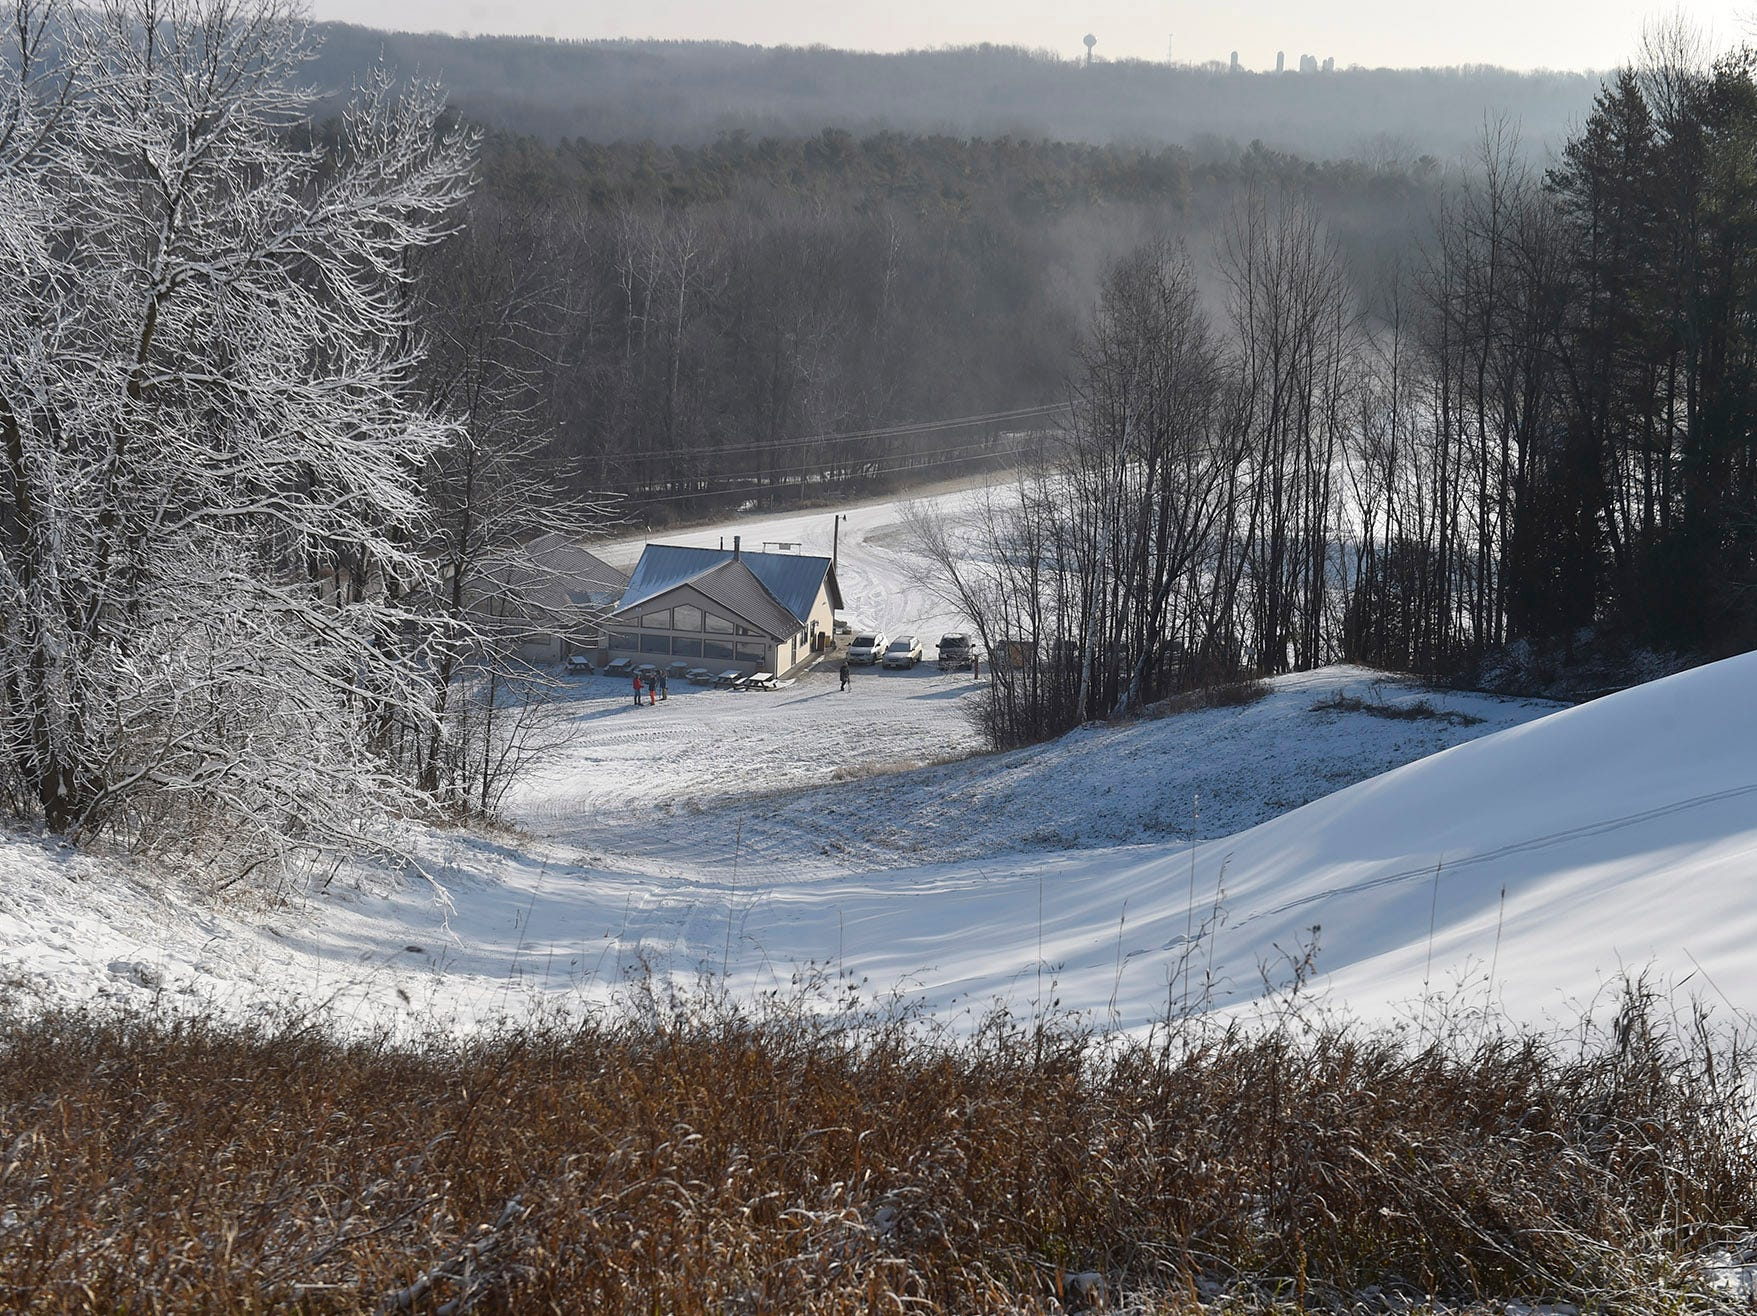 Winter Park in Kewaunee is expected to open Dec. 22 in preparation for another record-breaking season. The park introduces a new beginning or bunny hill ski/snowboarding hill with a handle tow-rope this year. The photo is taken from on top of the advanced ski/snowboard hill with a chalet at the foot of the hill.  Tina M. Gohr/USA TODAY NETWORK-Wisconsin